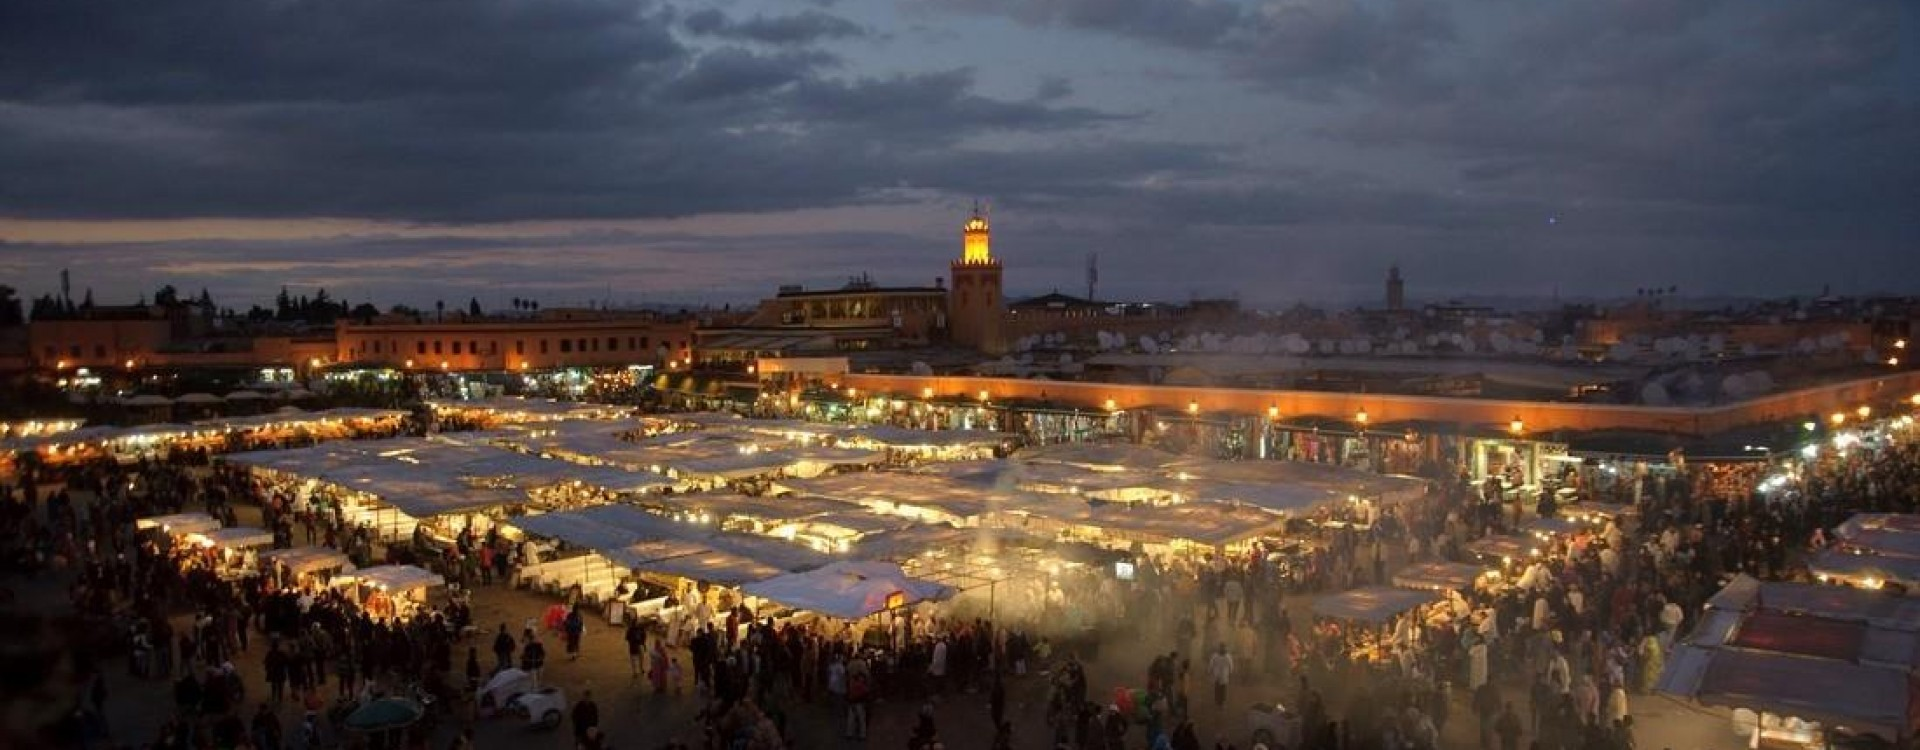 Marrakech at sunset